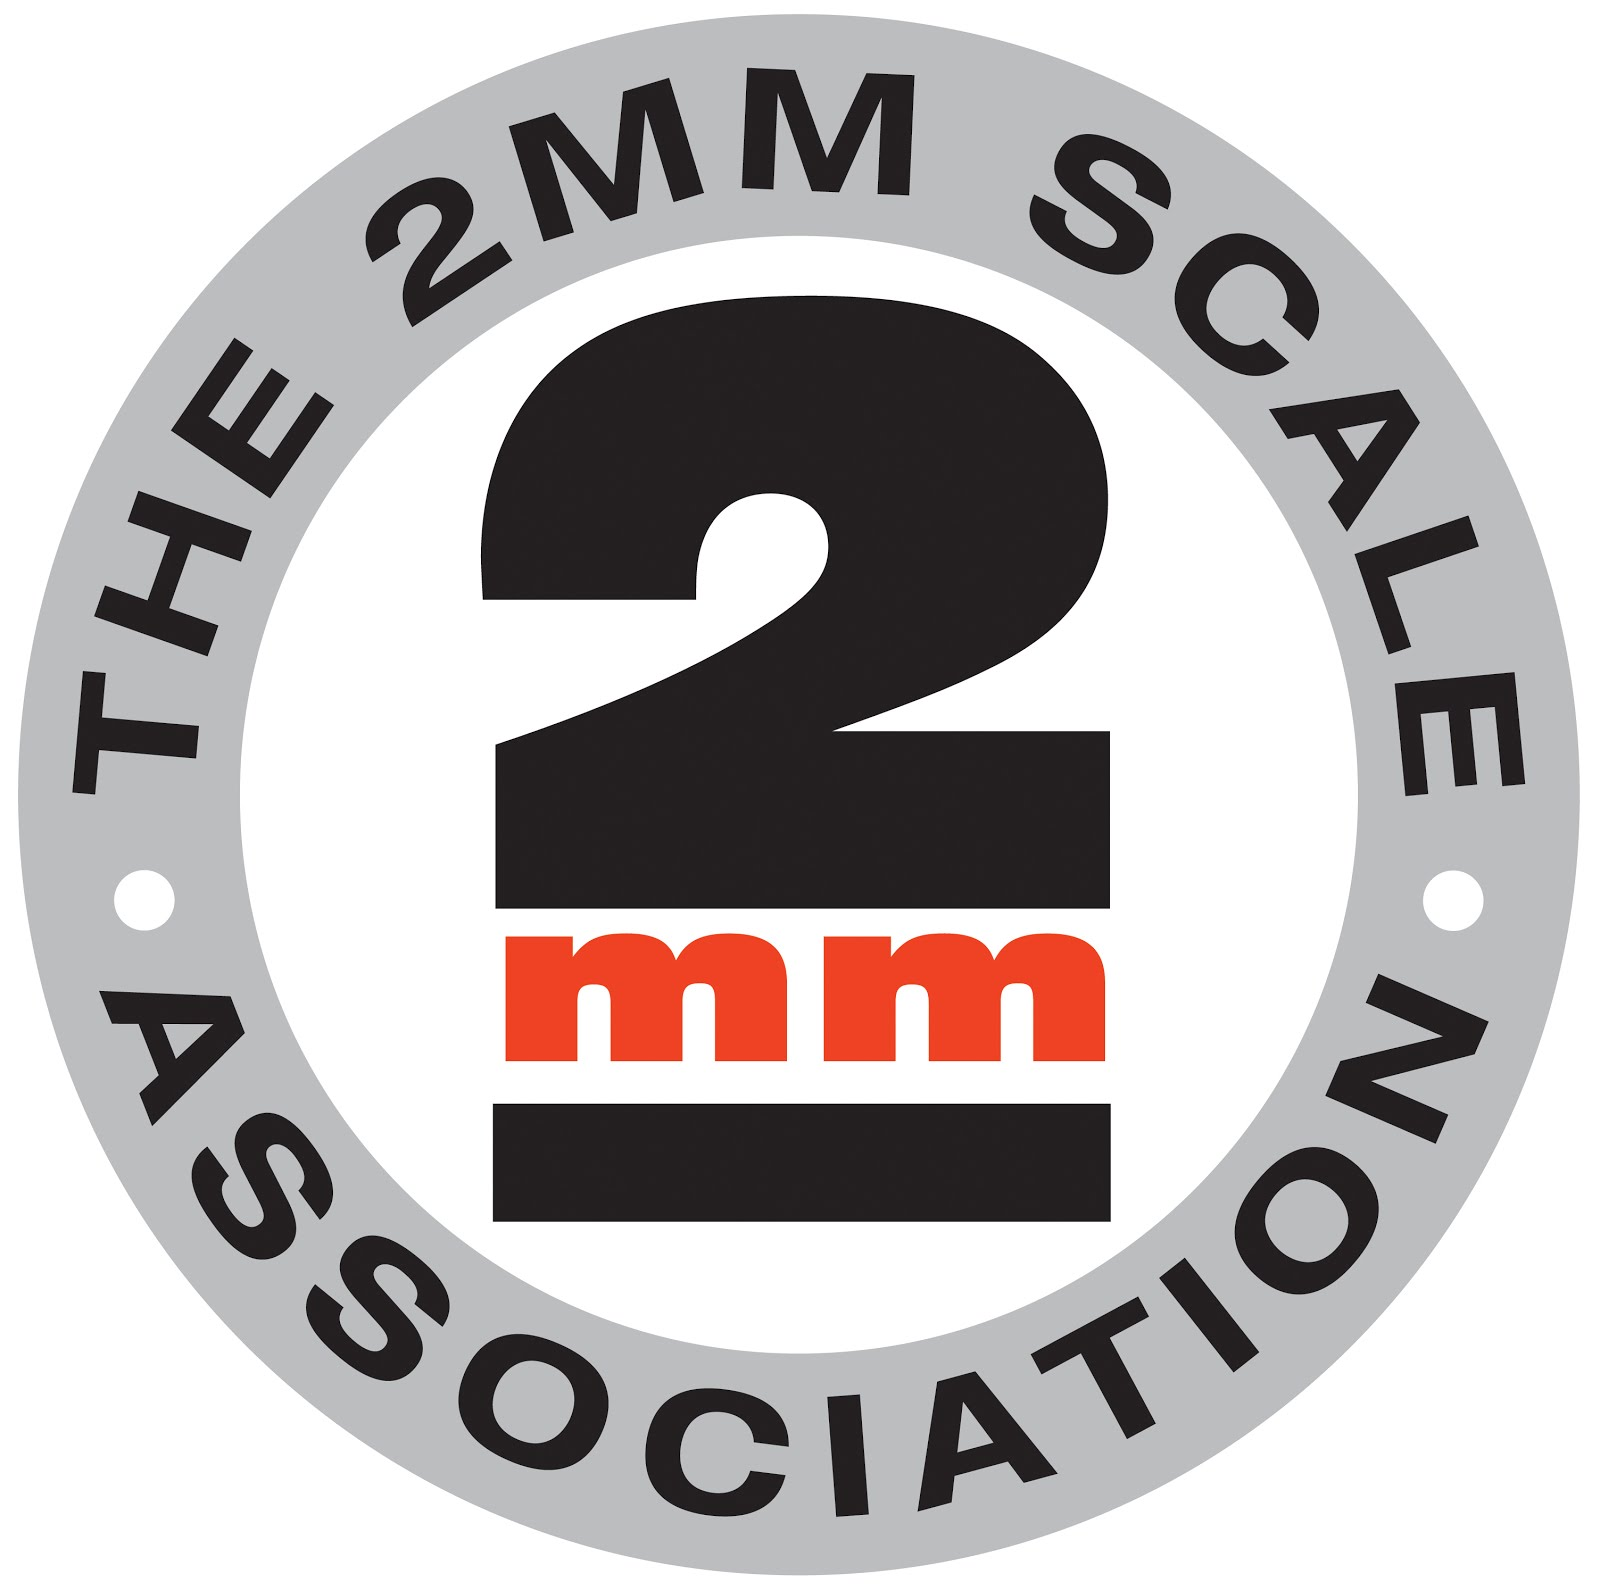 2mm Scale Association